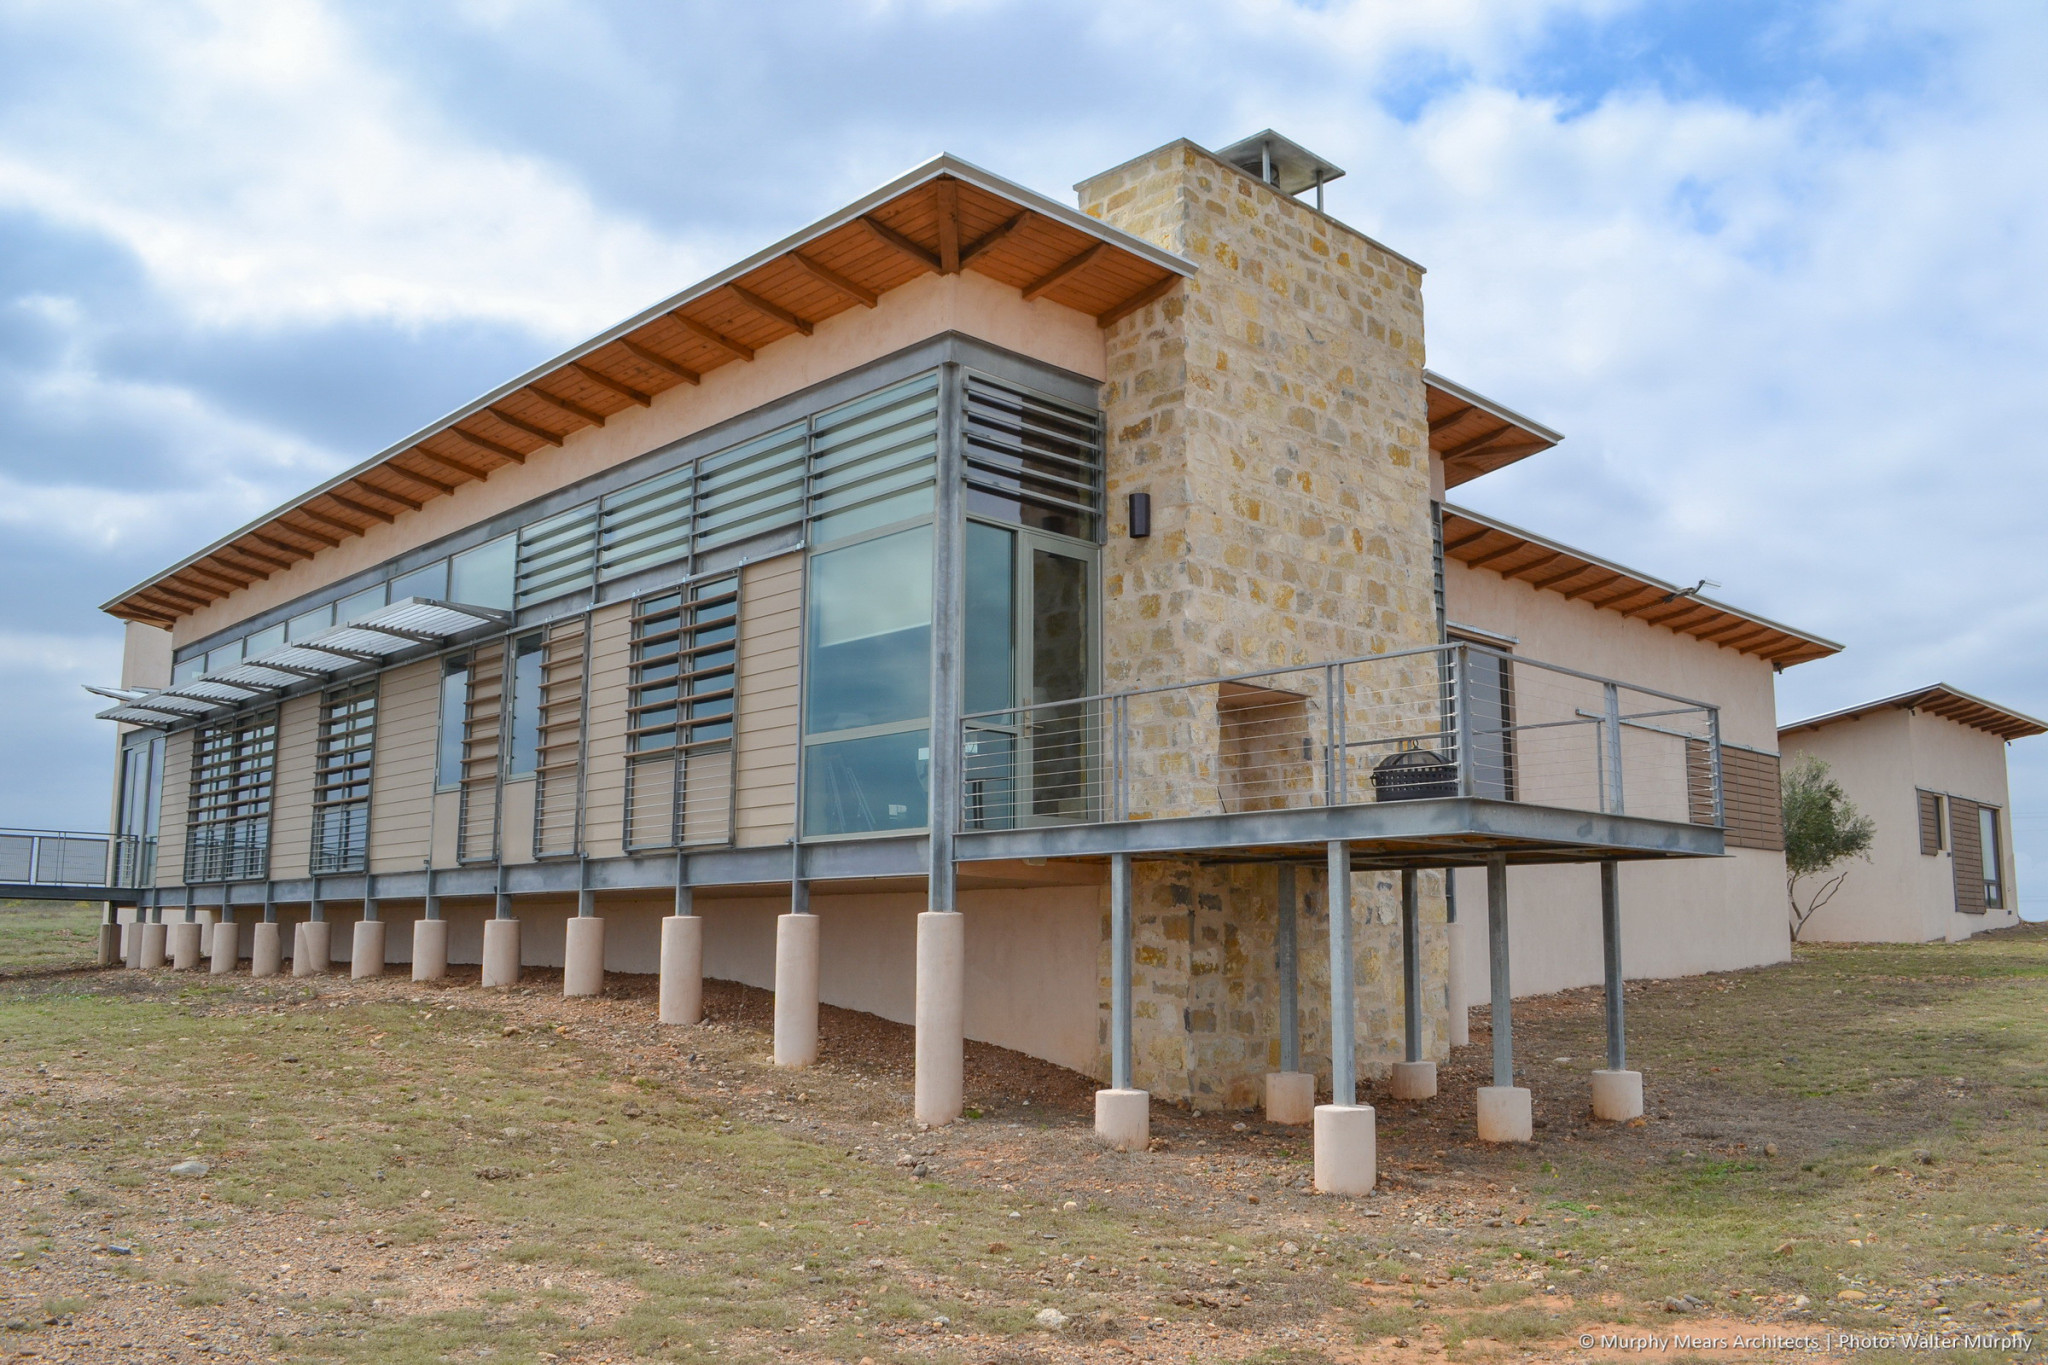 galvanized steel deck on piers wrapped around stone fireplace on end of main house